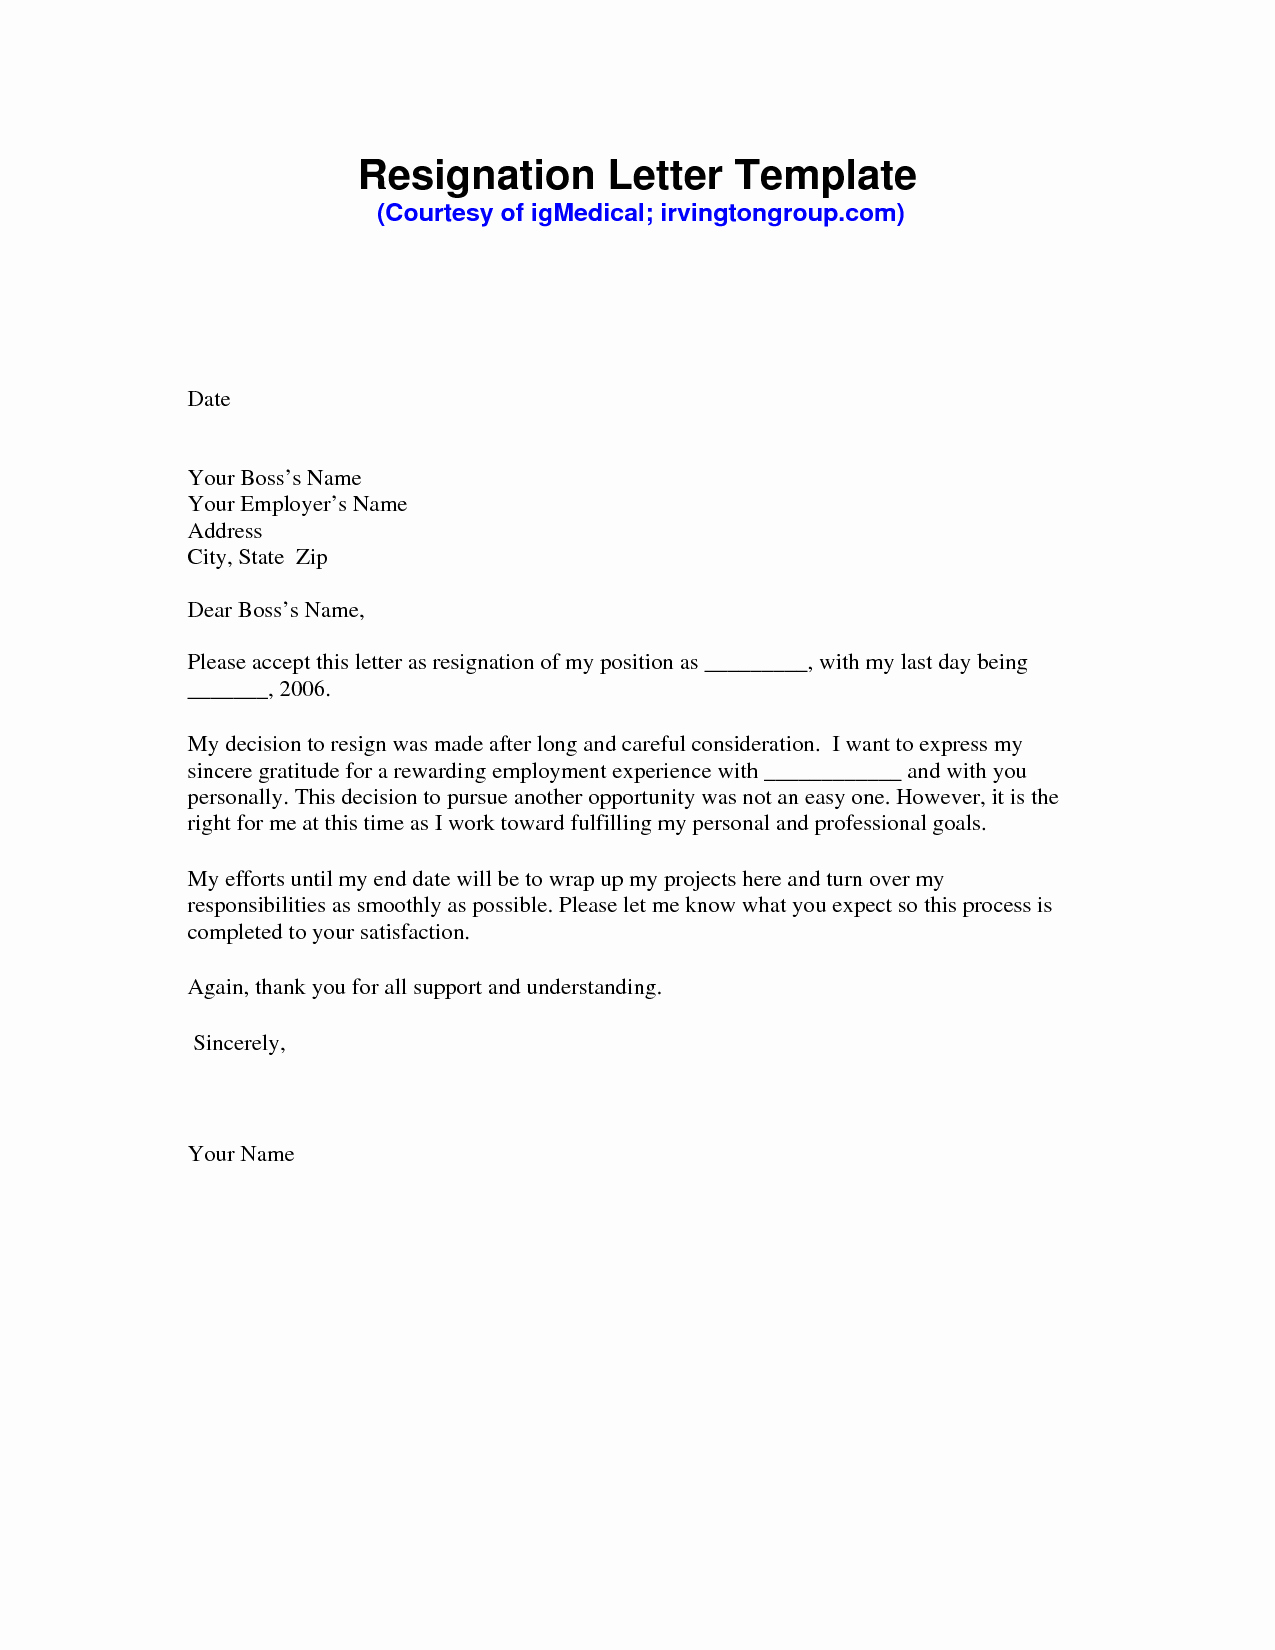 Resignation Letter Template Free Unique Resignation Letter Sample Pdf